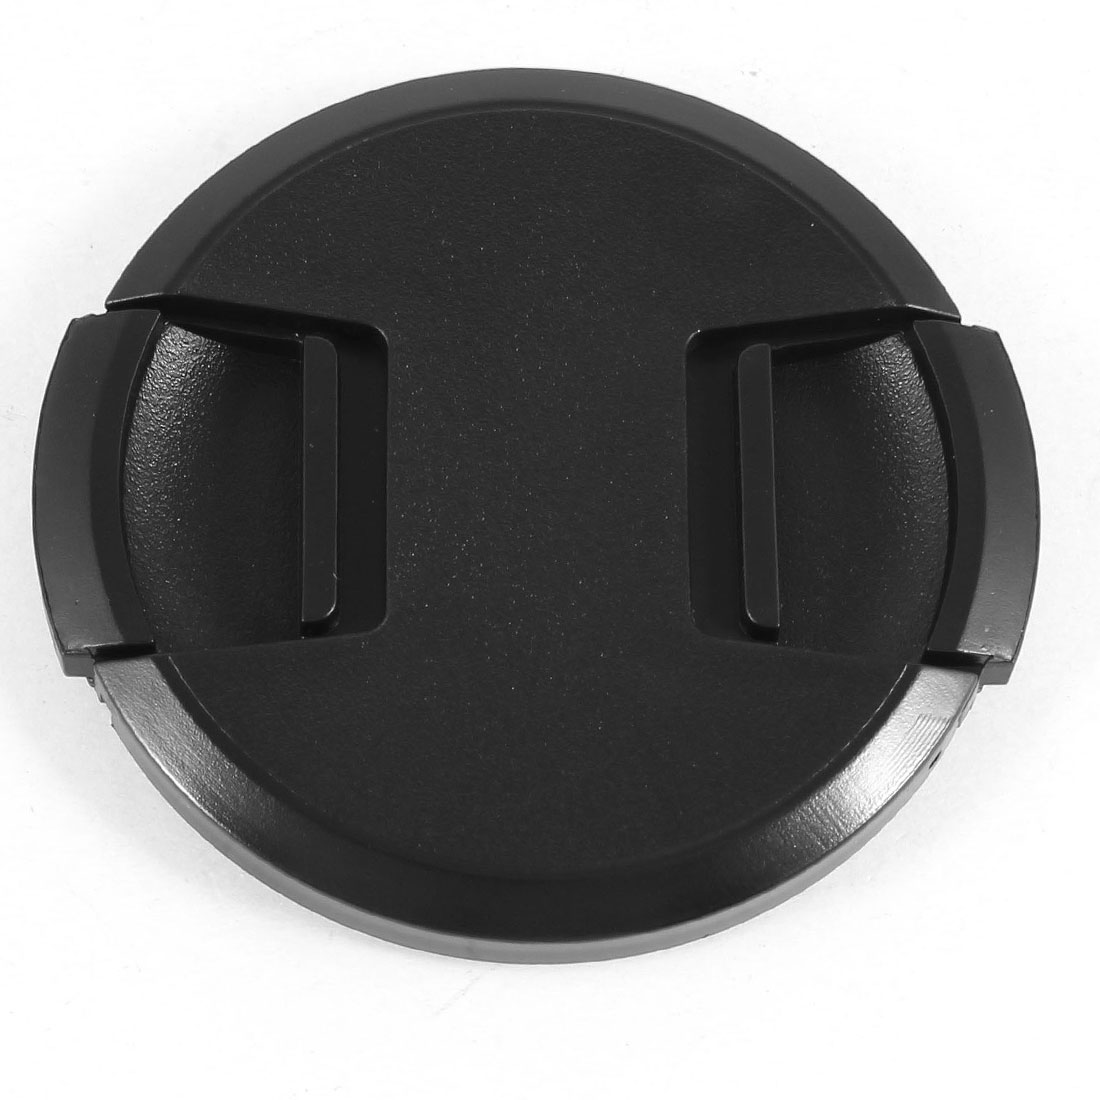 Unique Bargains Replacement Black 72mm Front Lens Cap Cover w String for DSLR SLR Camera